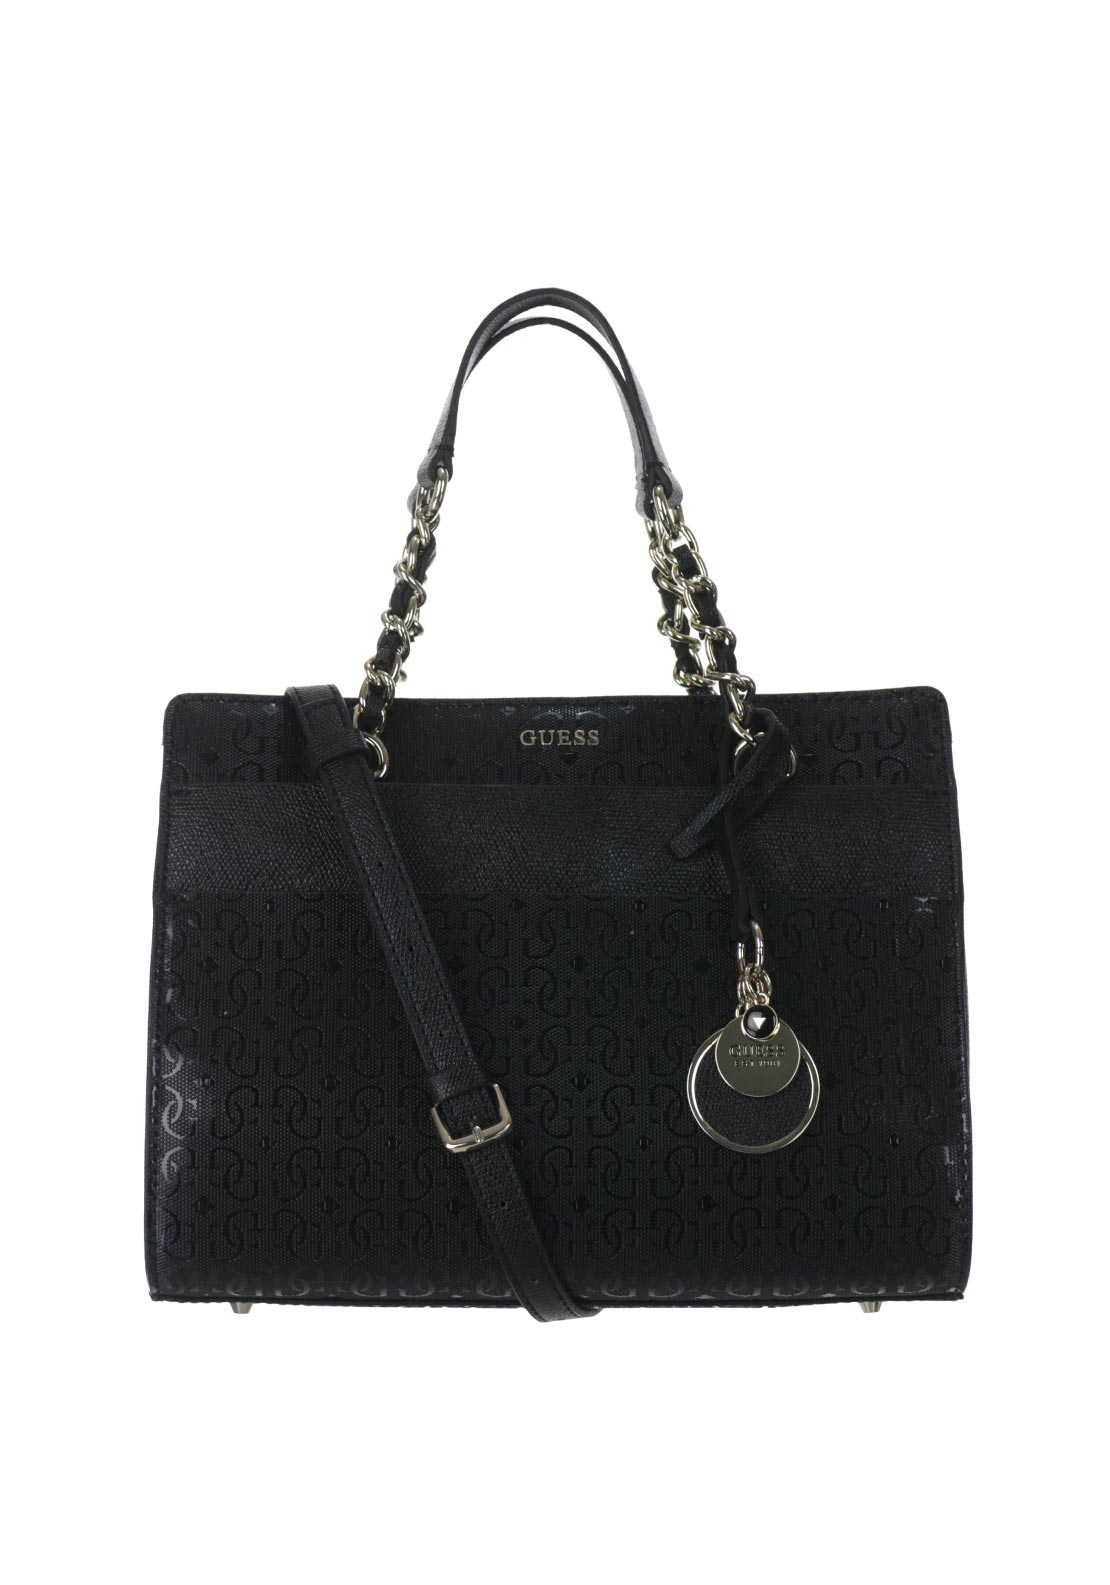 Guess Janette Logo Grab Bag, Black